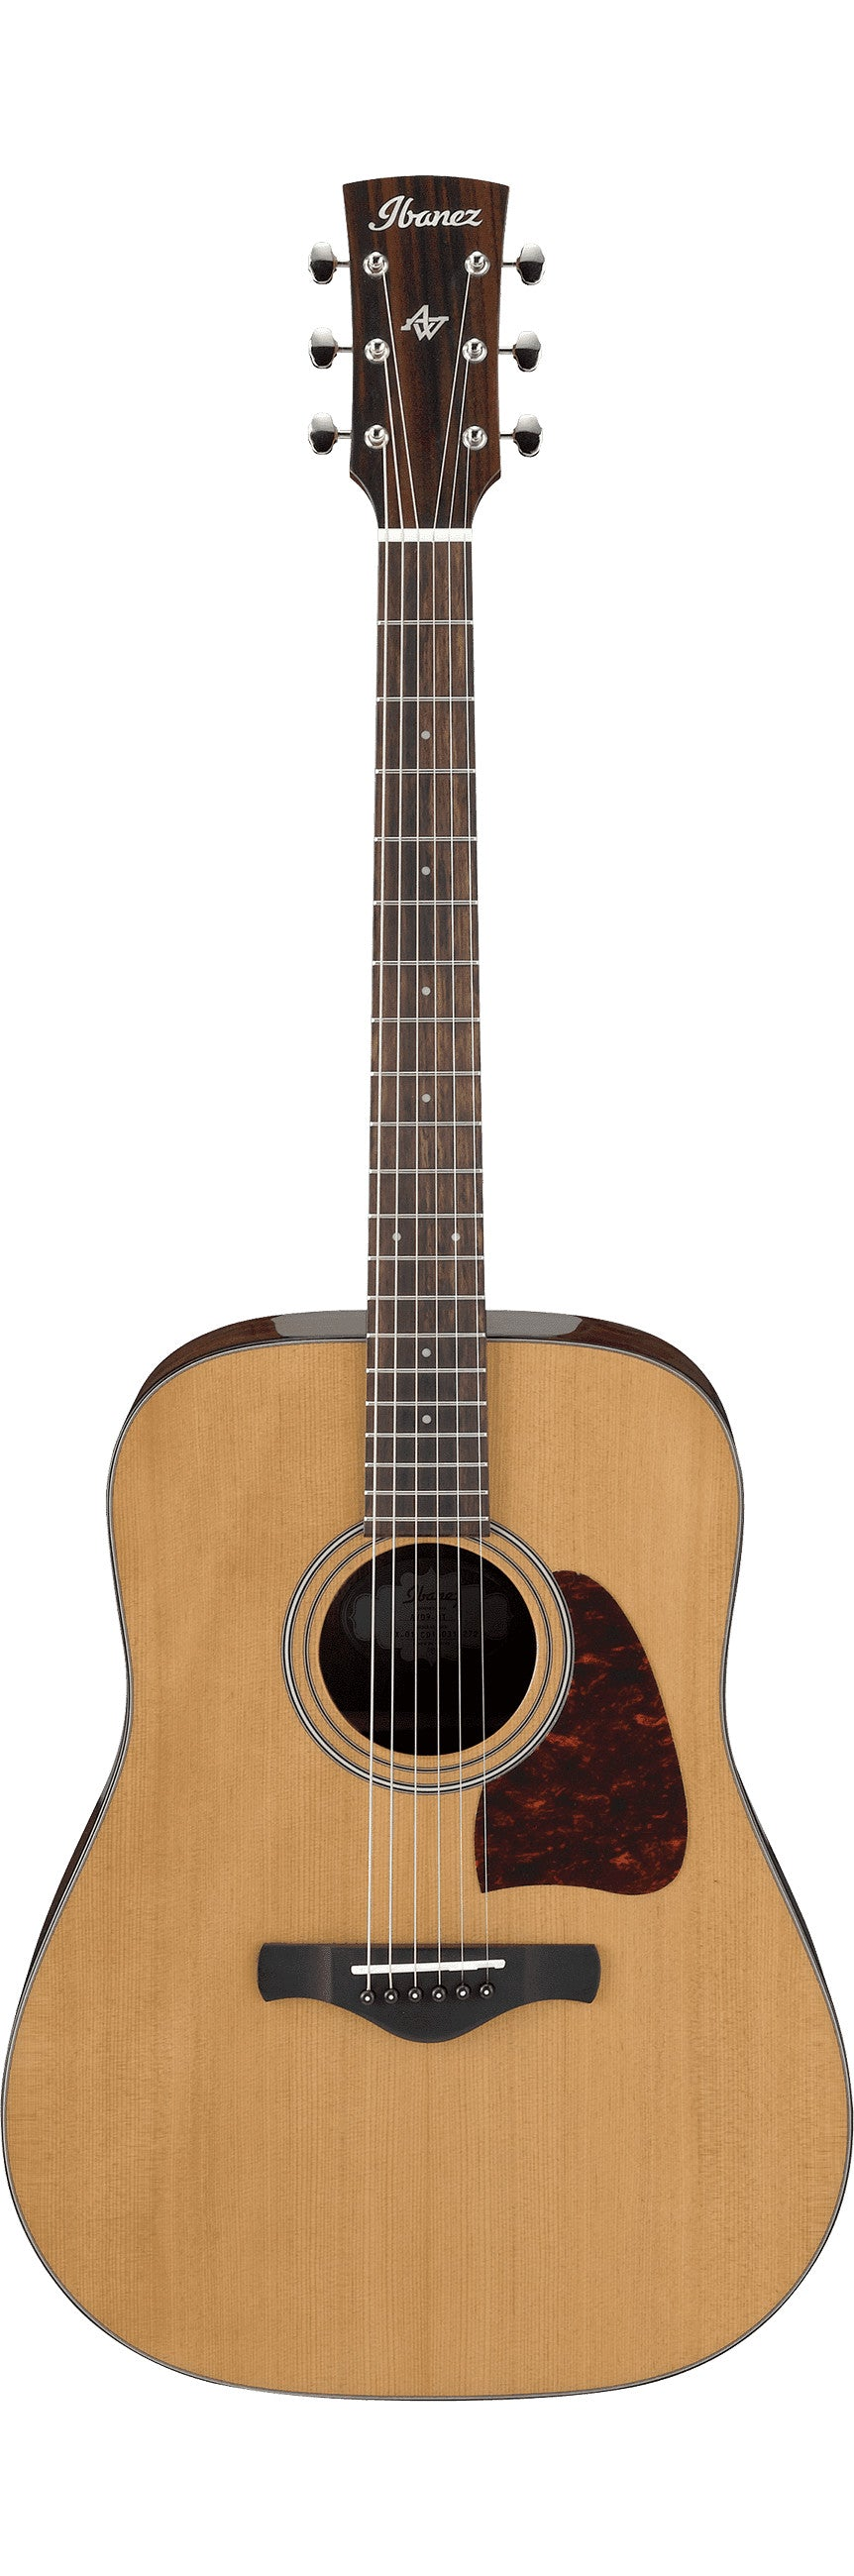 Ibanez AVD9-NT Artwood Vintage Thermo Aged Acoustic Guitar-Natural